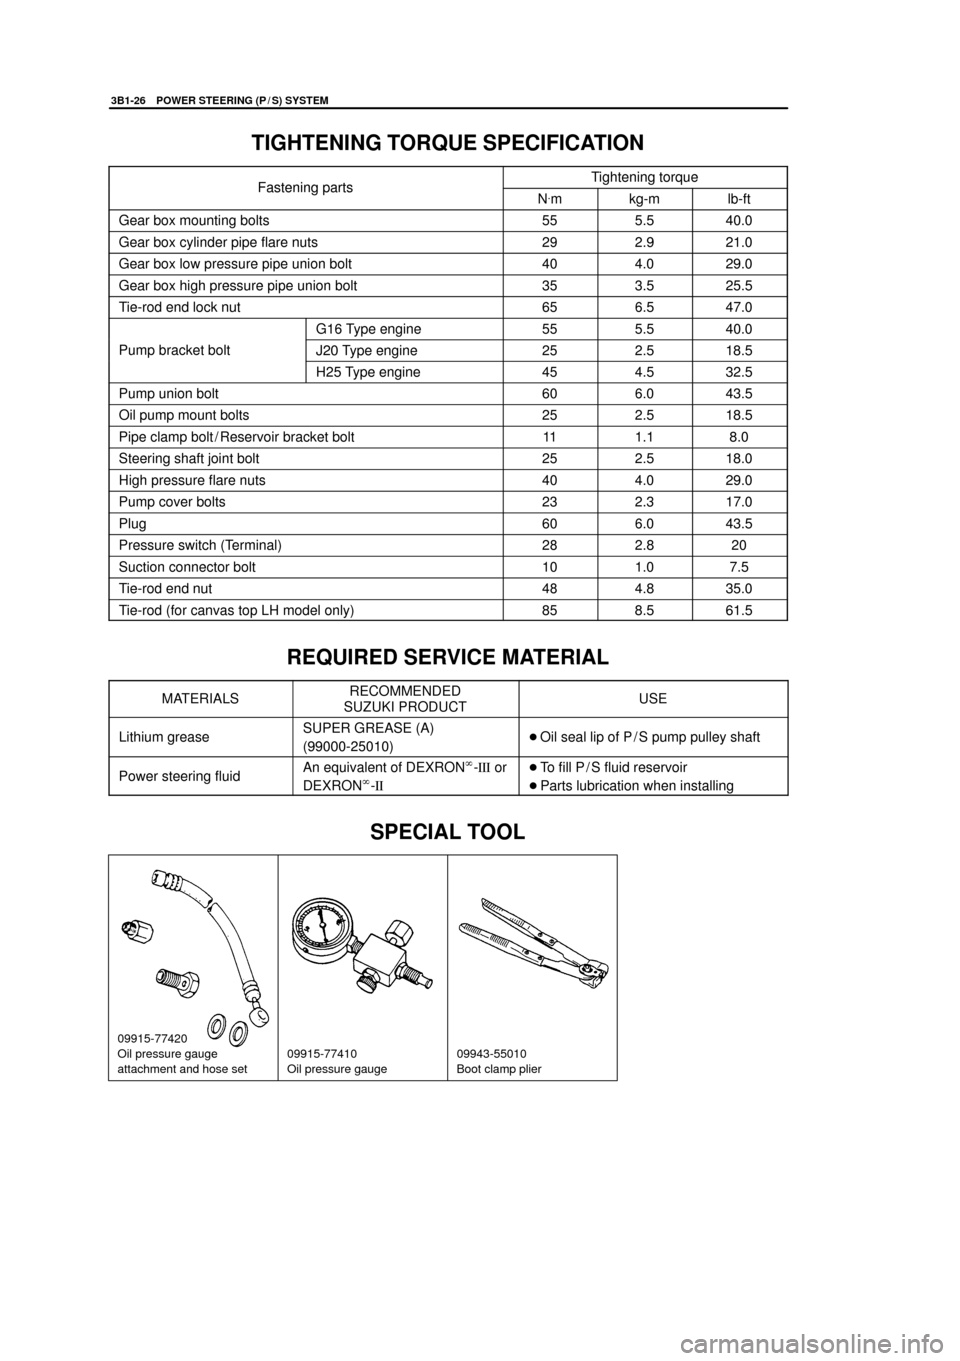 SUZUKI GRAND VITARA 1999 2.G Service Workshop Manual